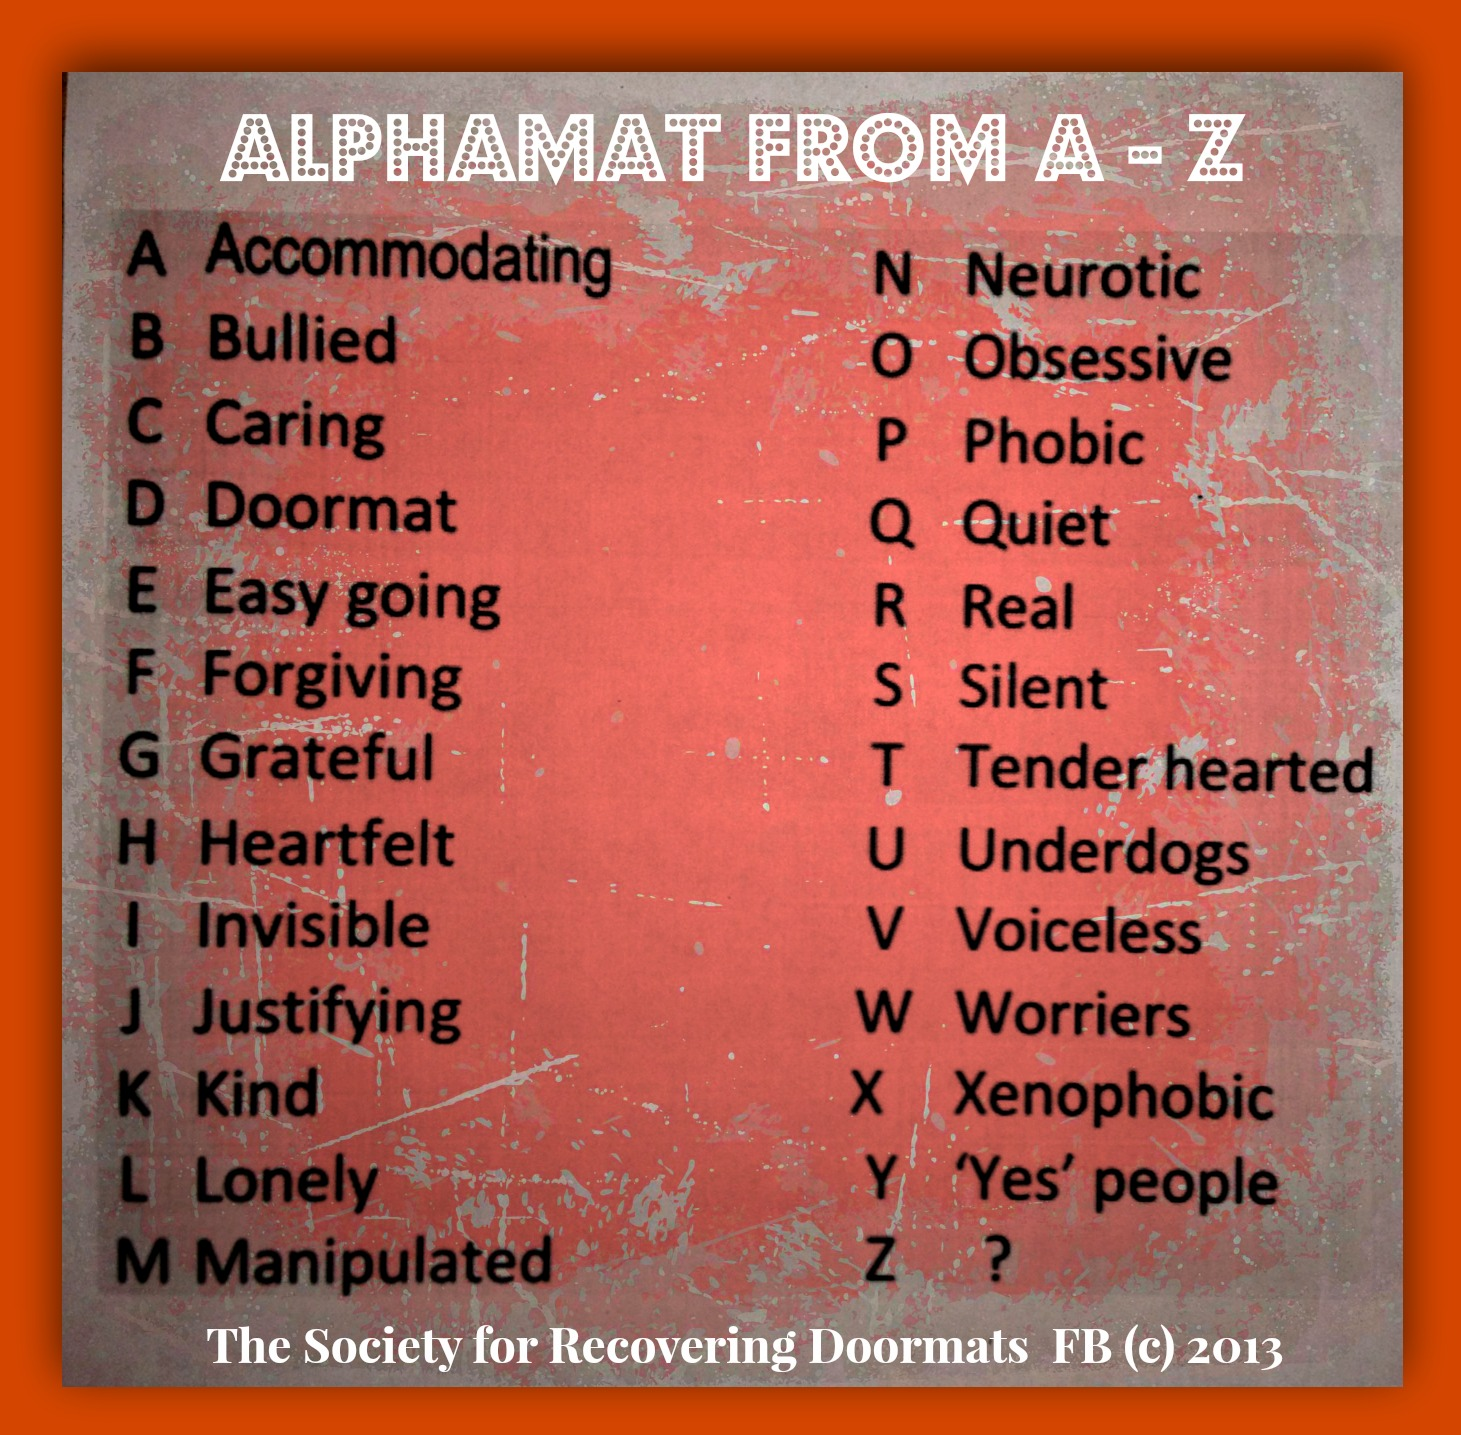 Alphamat from A - Z